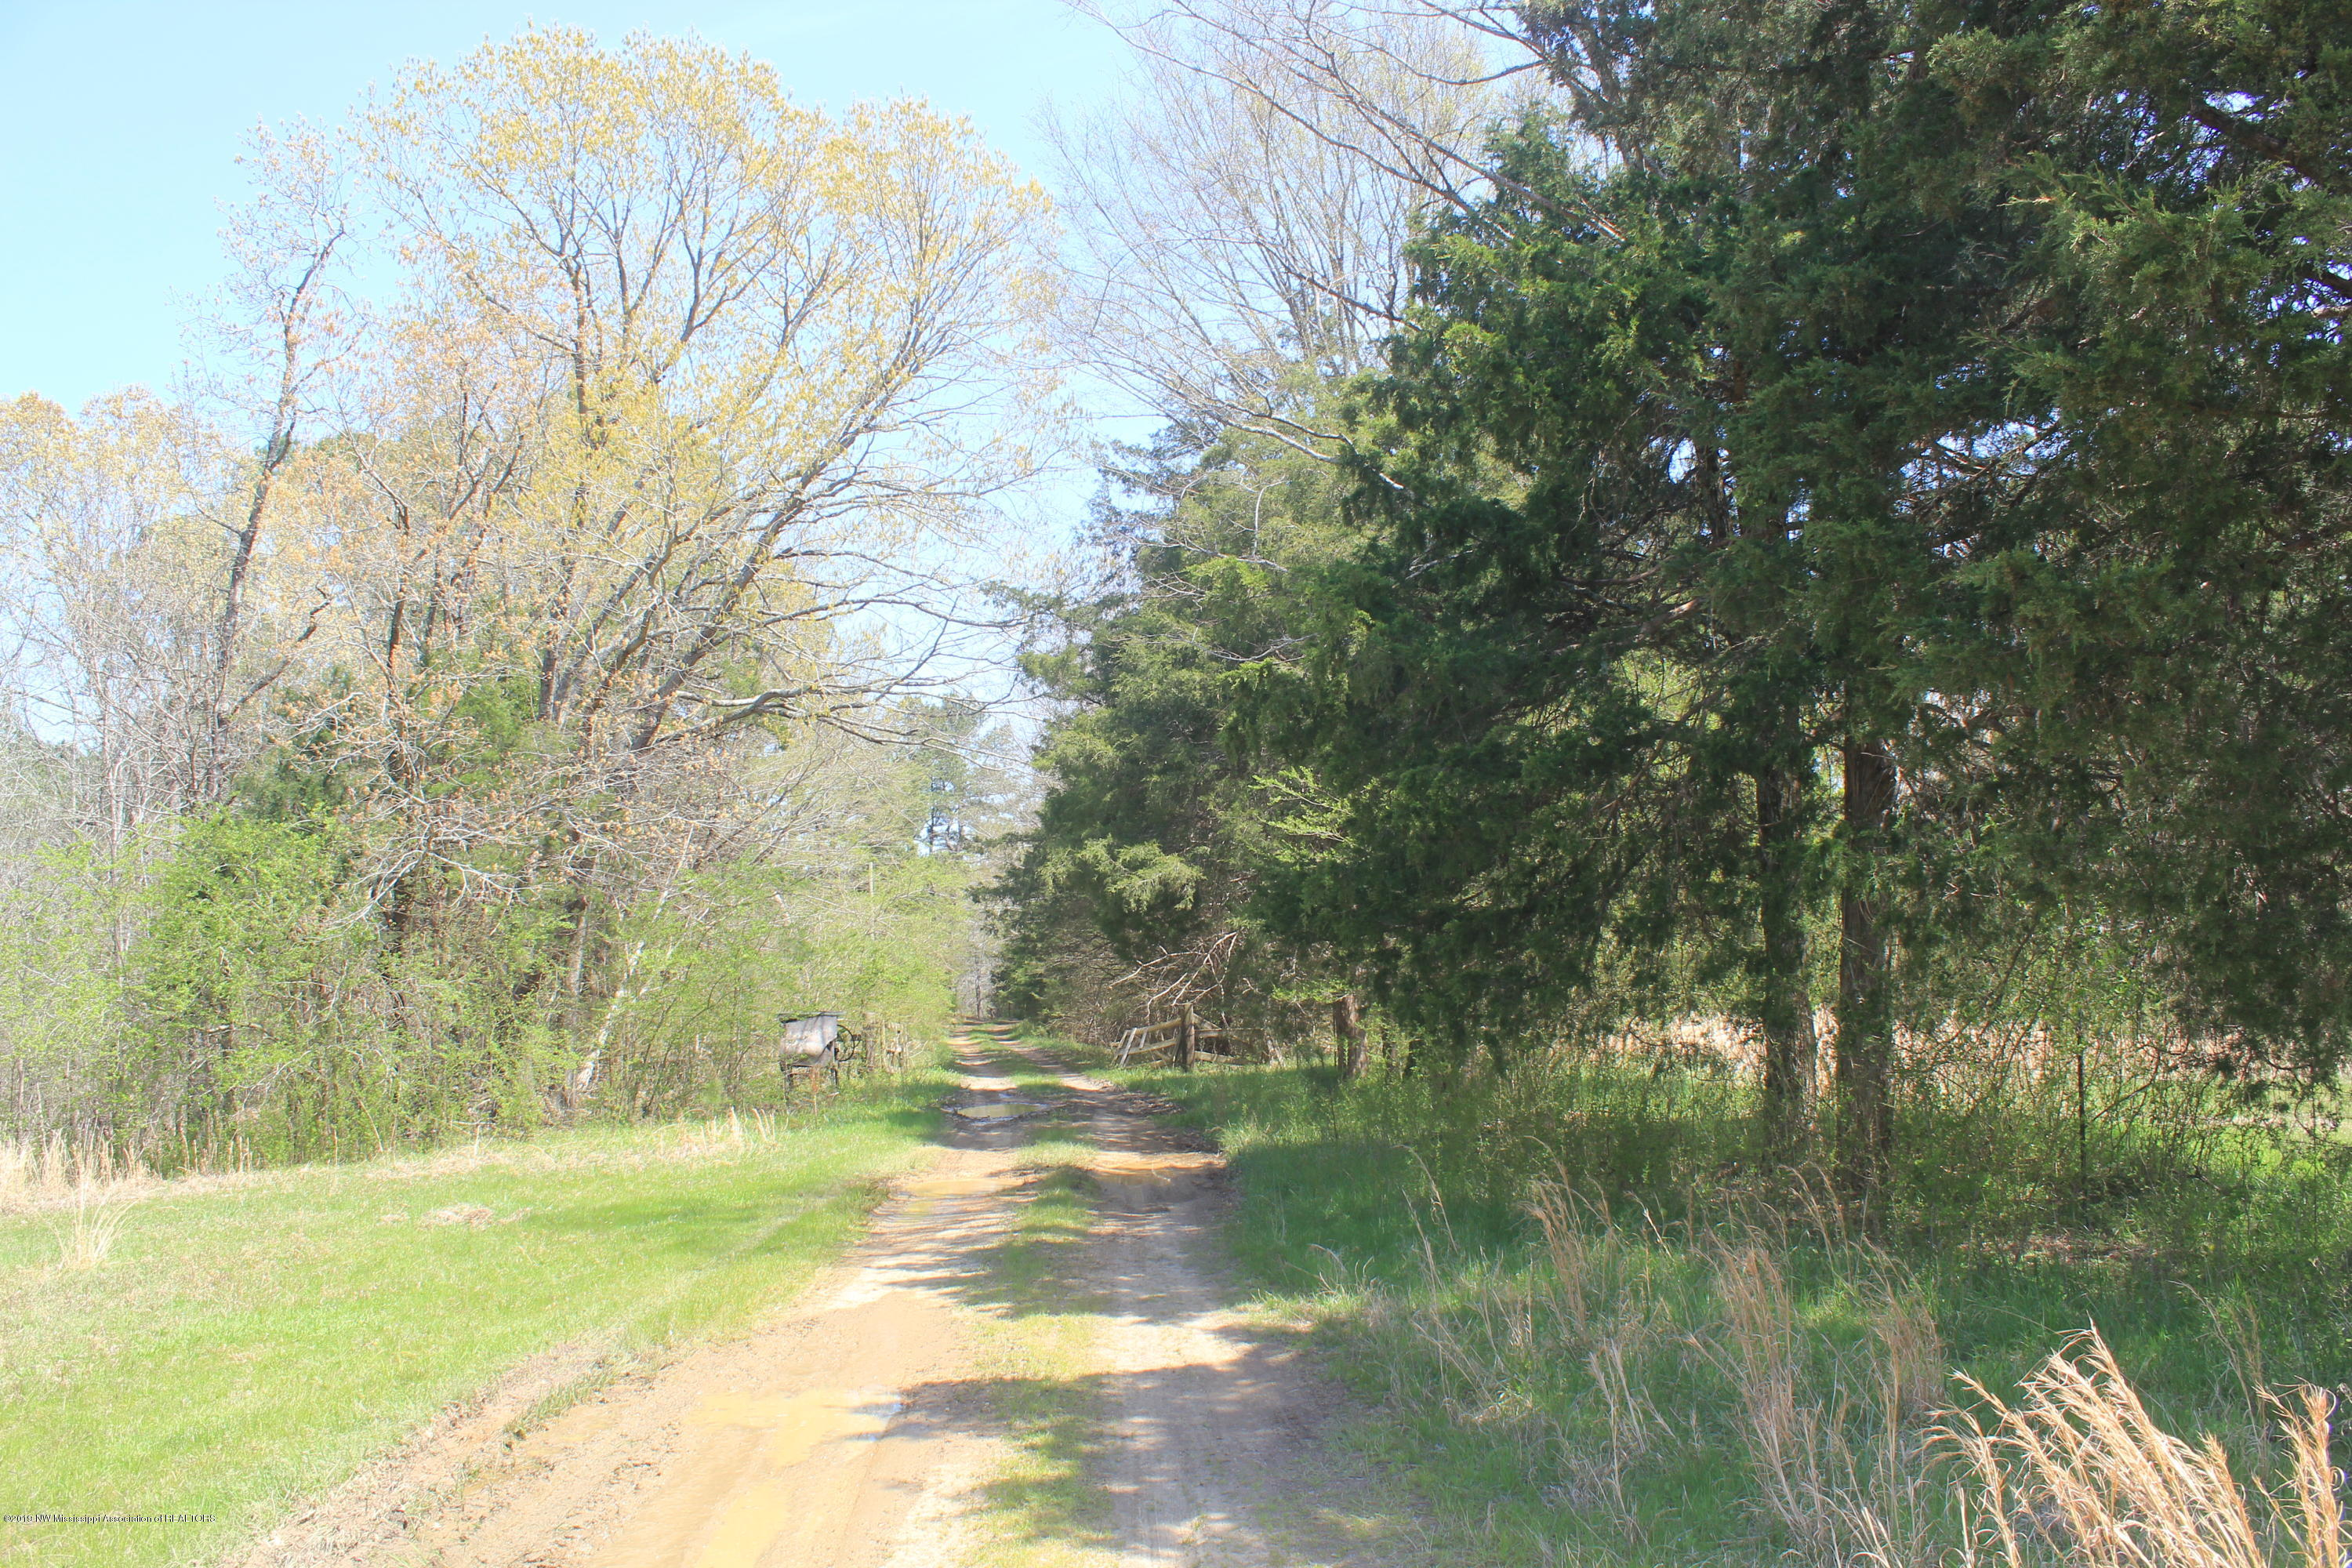 6860 Highway 309, Marshall, Mississippi 38611, ,Land,For Sale,Highway 309,322031